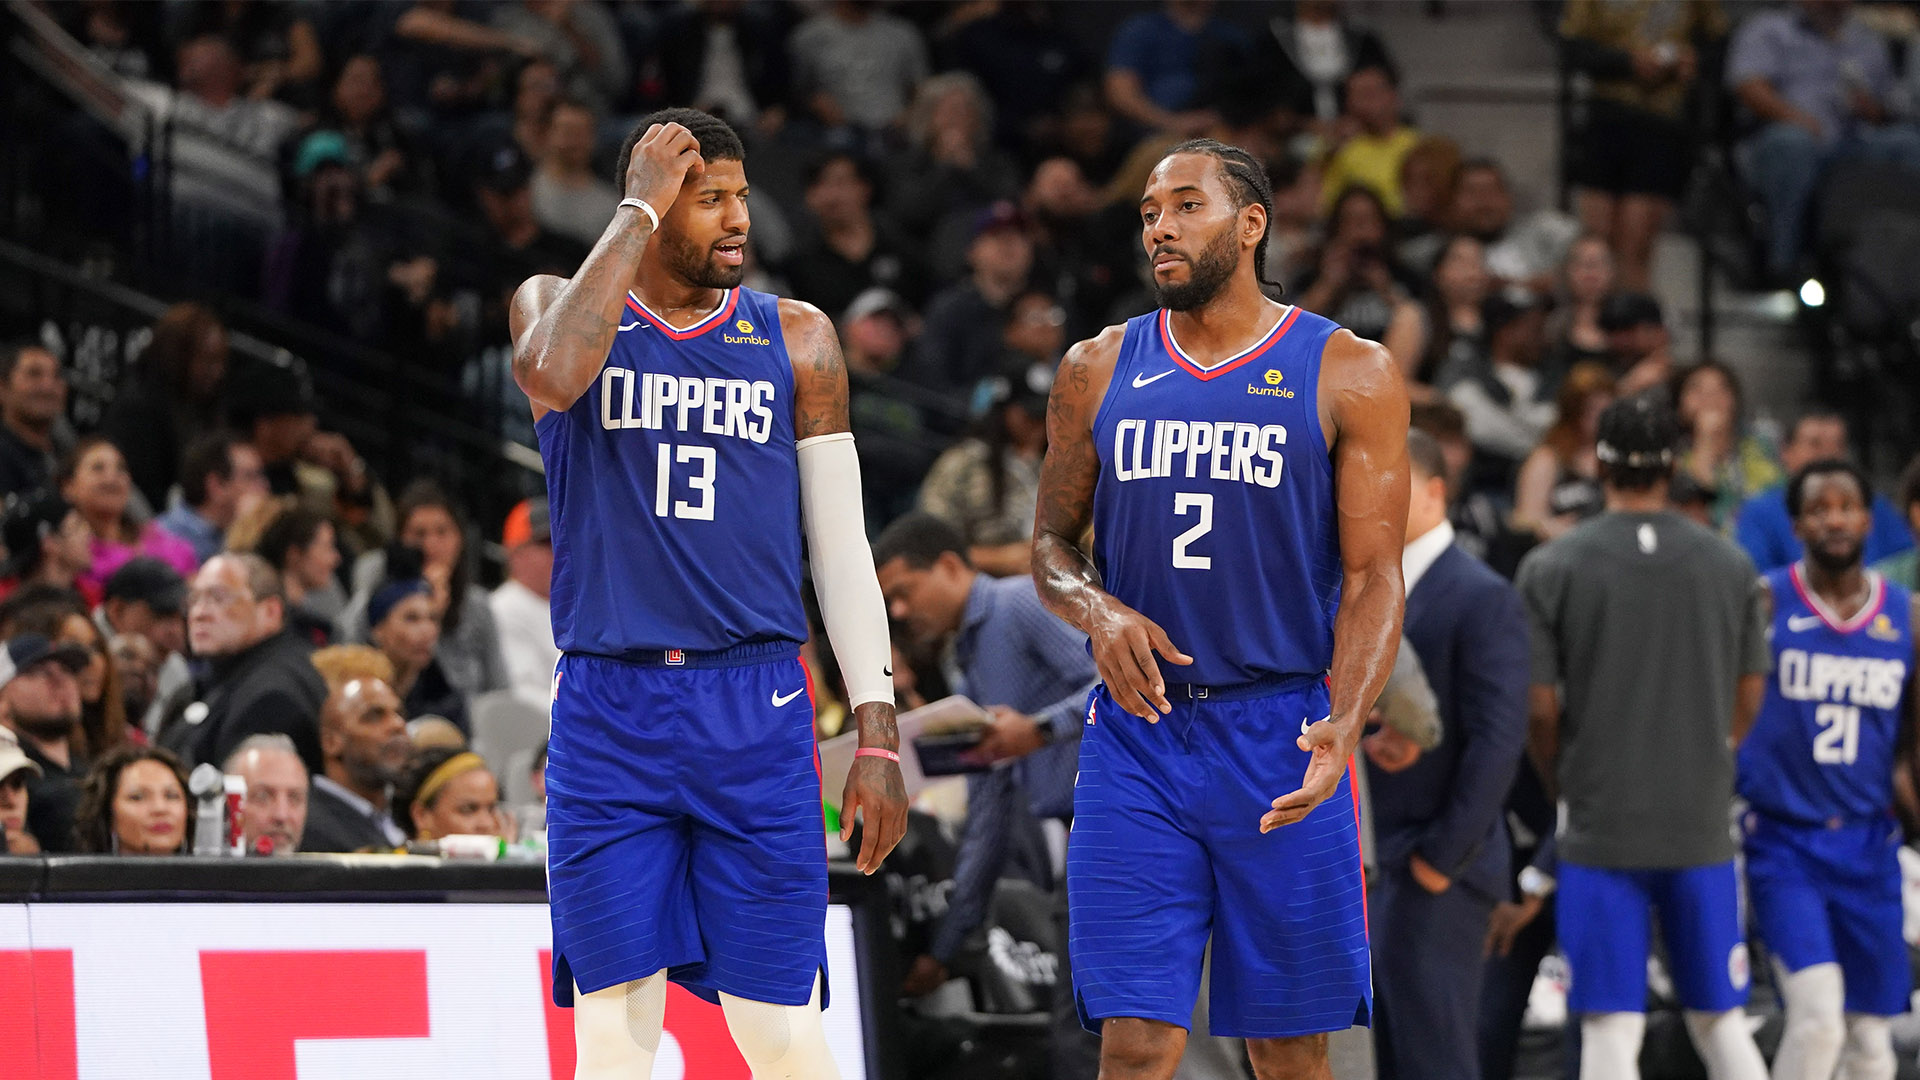 Top 15 free agents of the 2021 NBA offseason | RSN